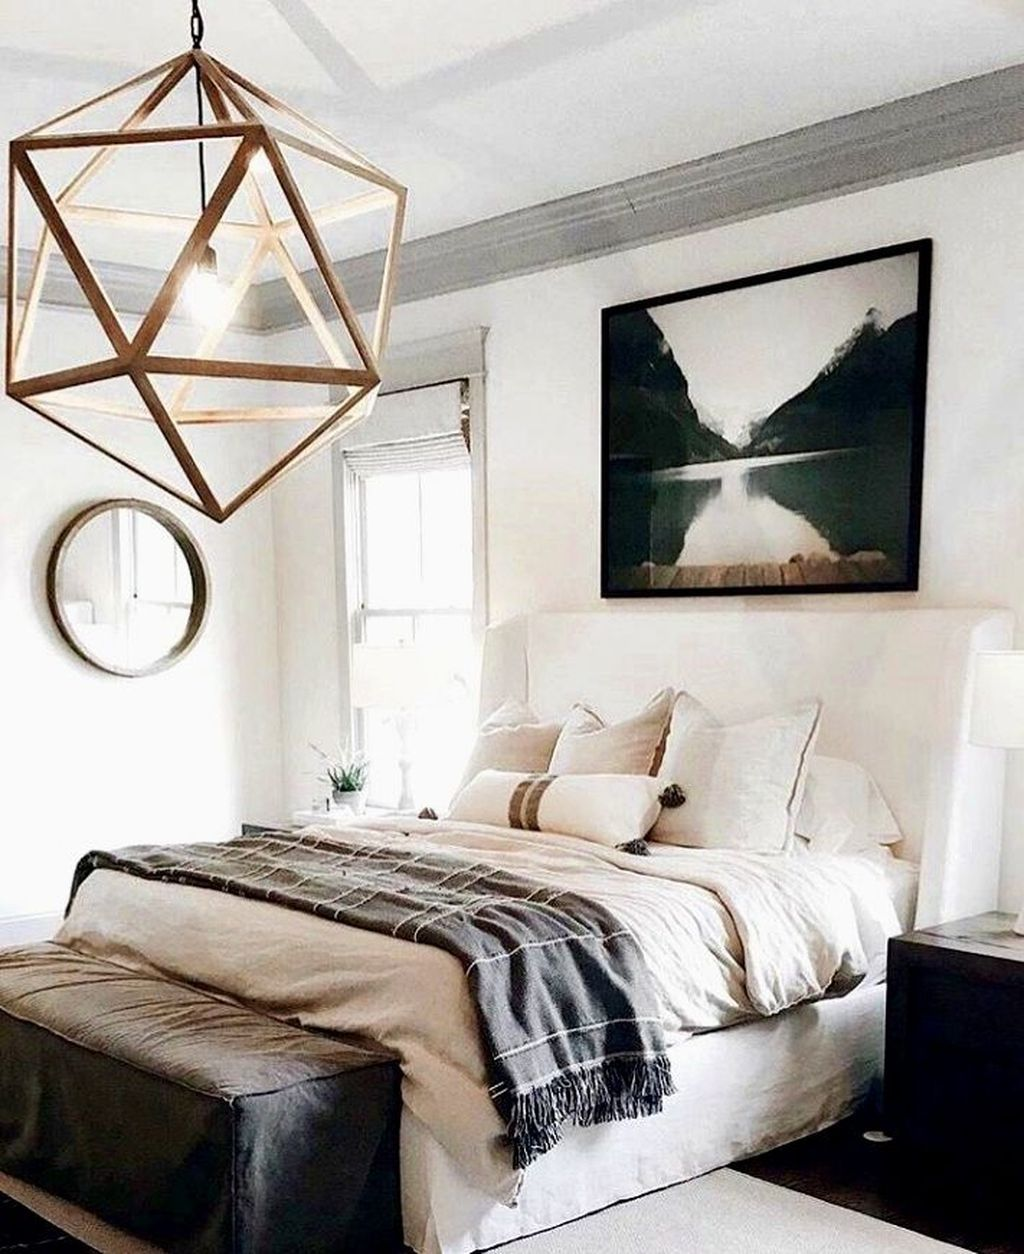 30+ Popular Lighting Design Ideas For Bedroom Looks Beautiful